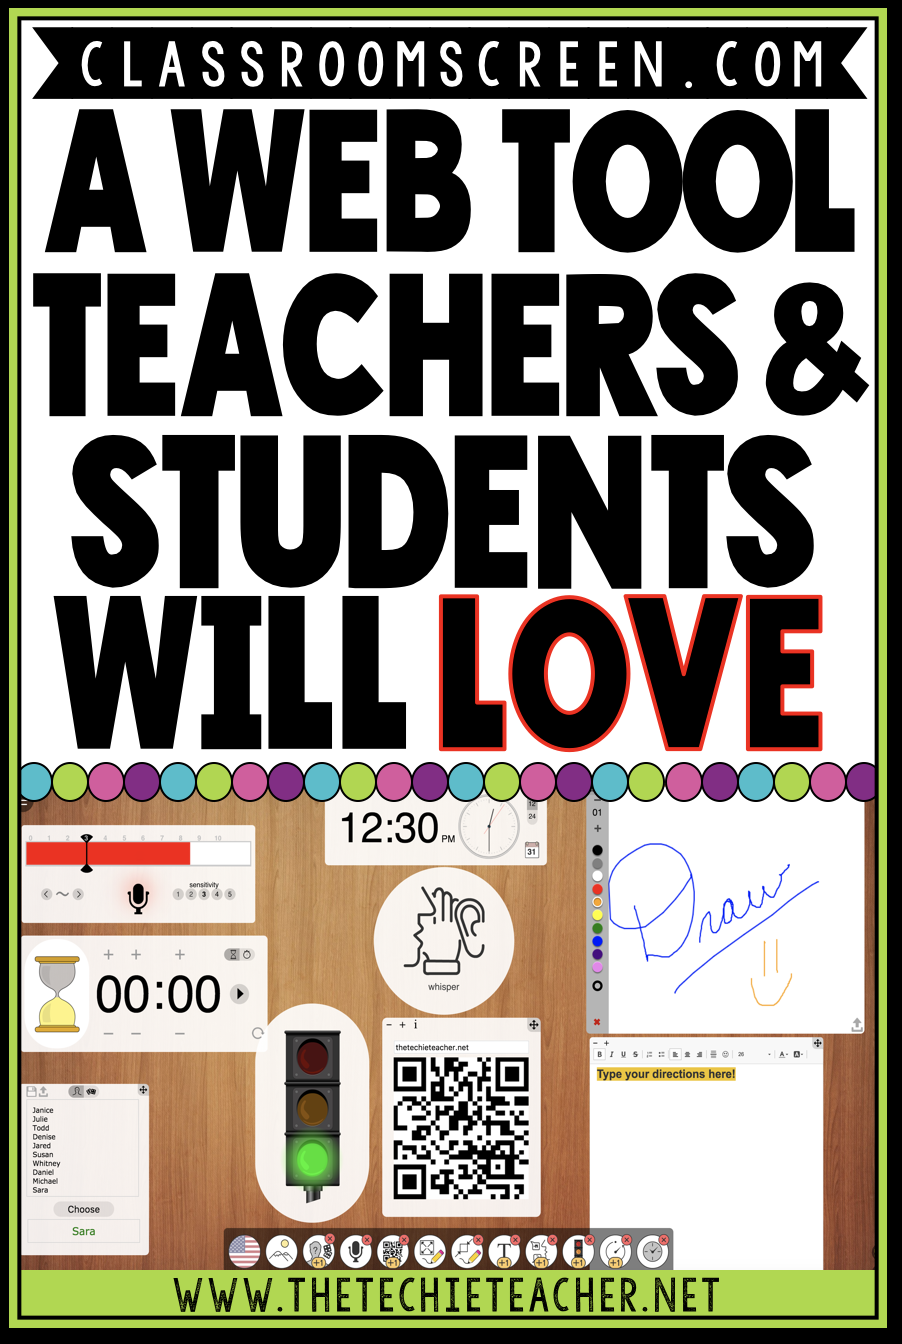 Classroomscreen.com: A Web Tool Teachers and Students will LOVE. Easy way to turn your browser into an interactive board. Digital stoplight, timer, calendar, random name picker, drawing tools, work symbols, text area, QR generator and more are all tools included in this free web tool.